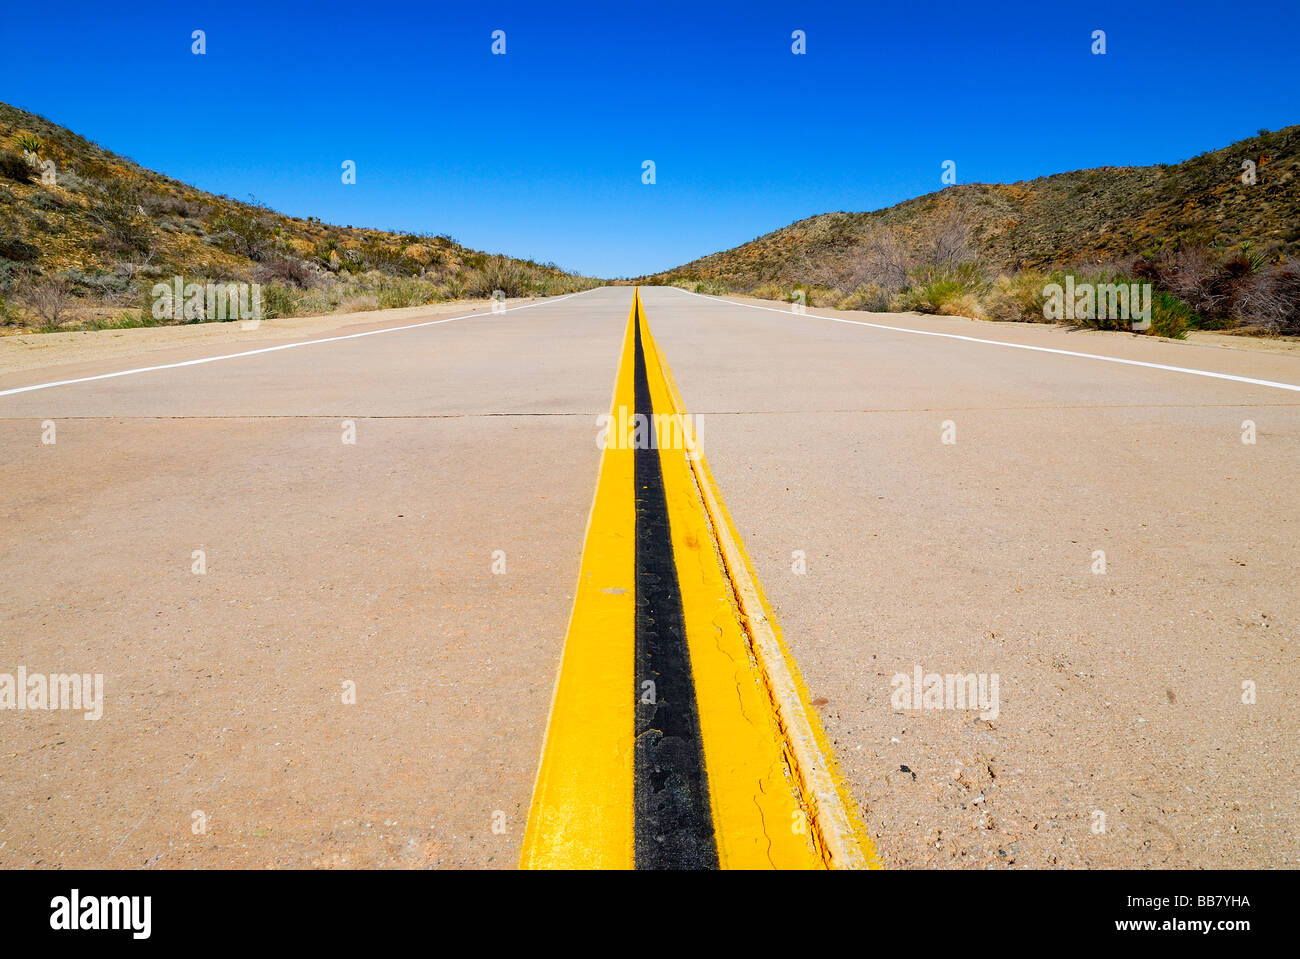 highway in desert  yellow and black line  road signalization - Stock Image